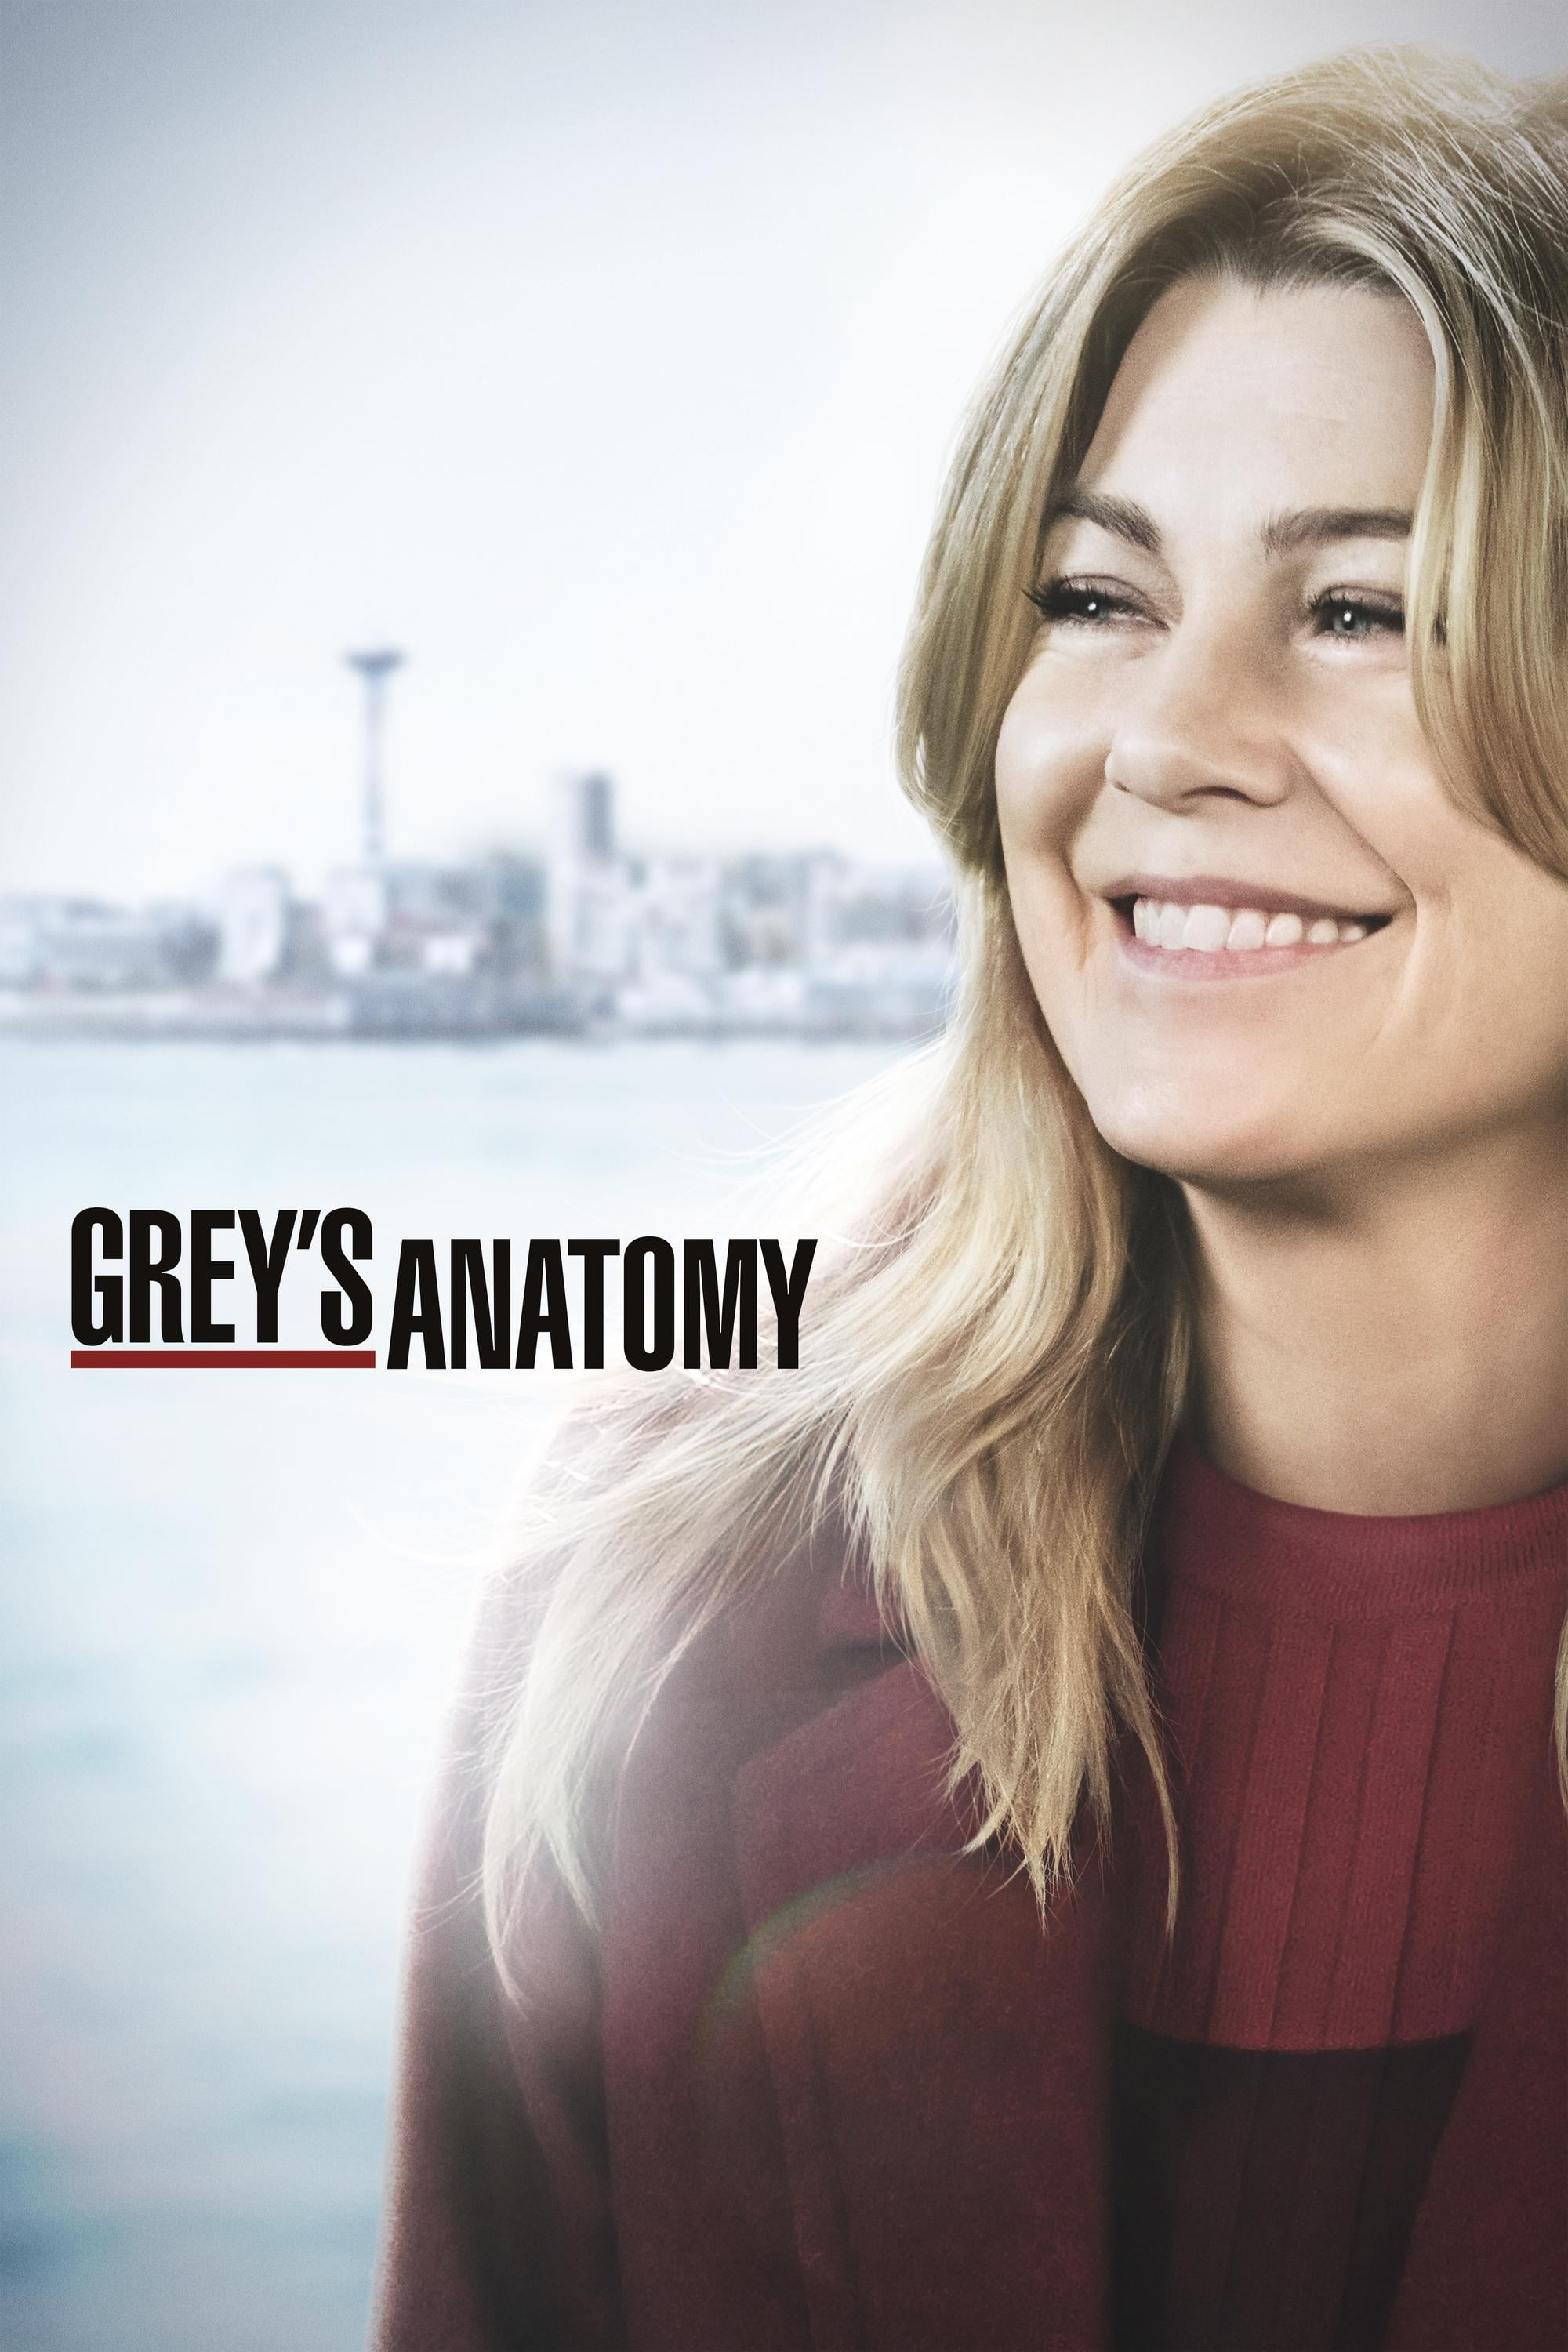 Grey's Anatomy Season 15